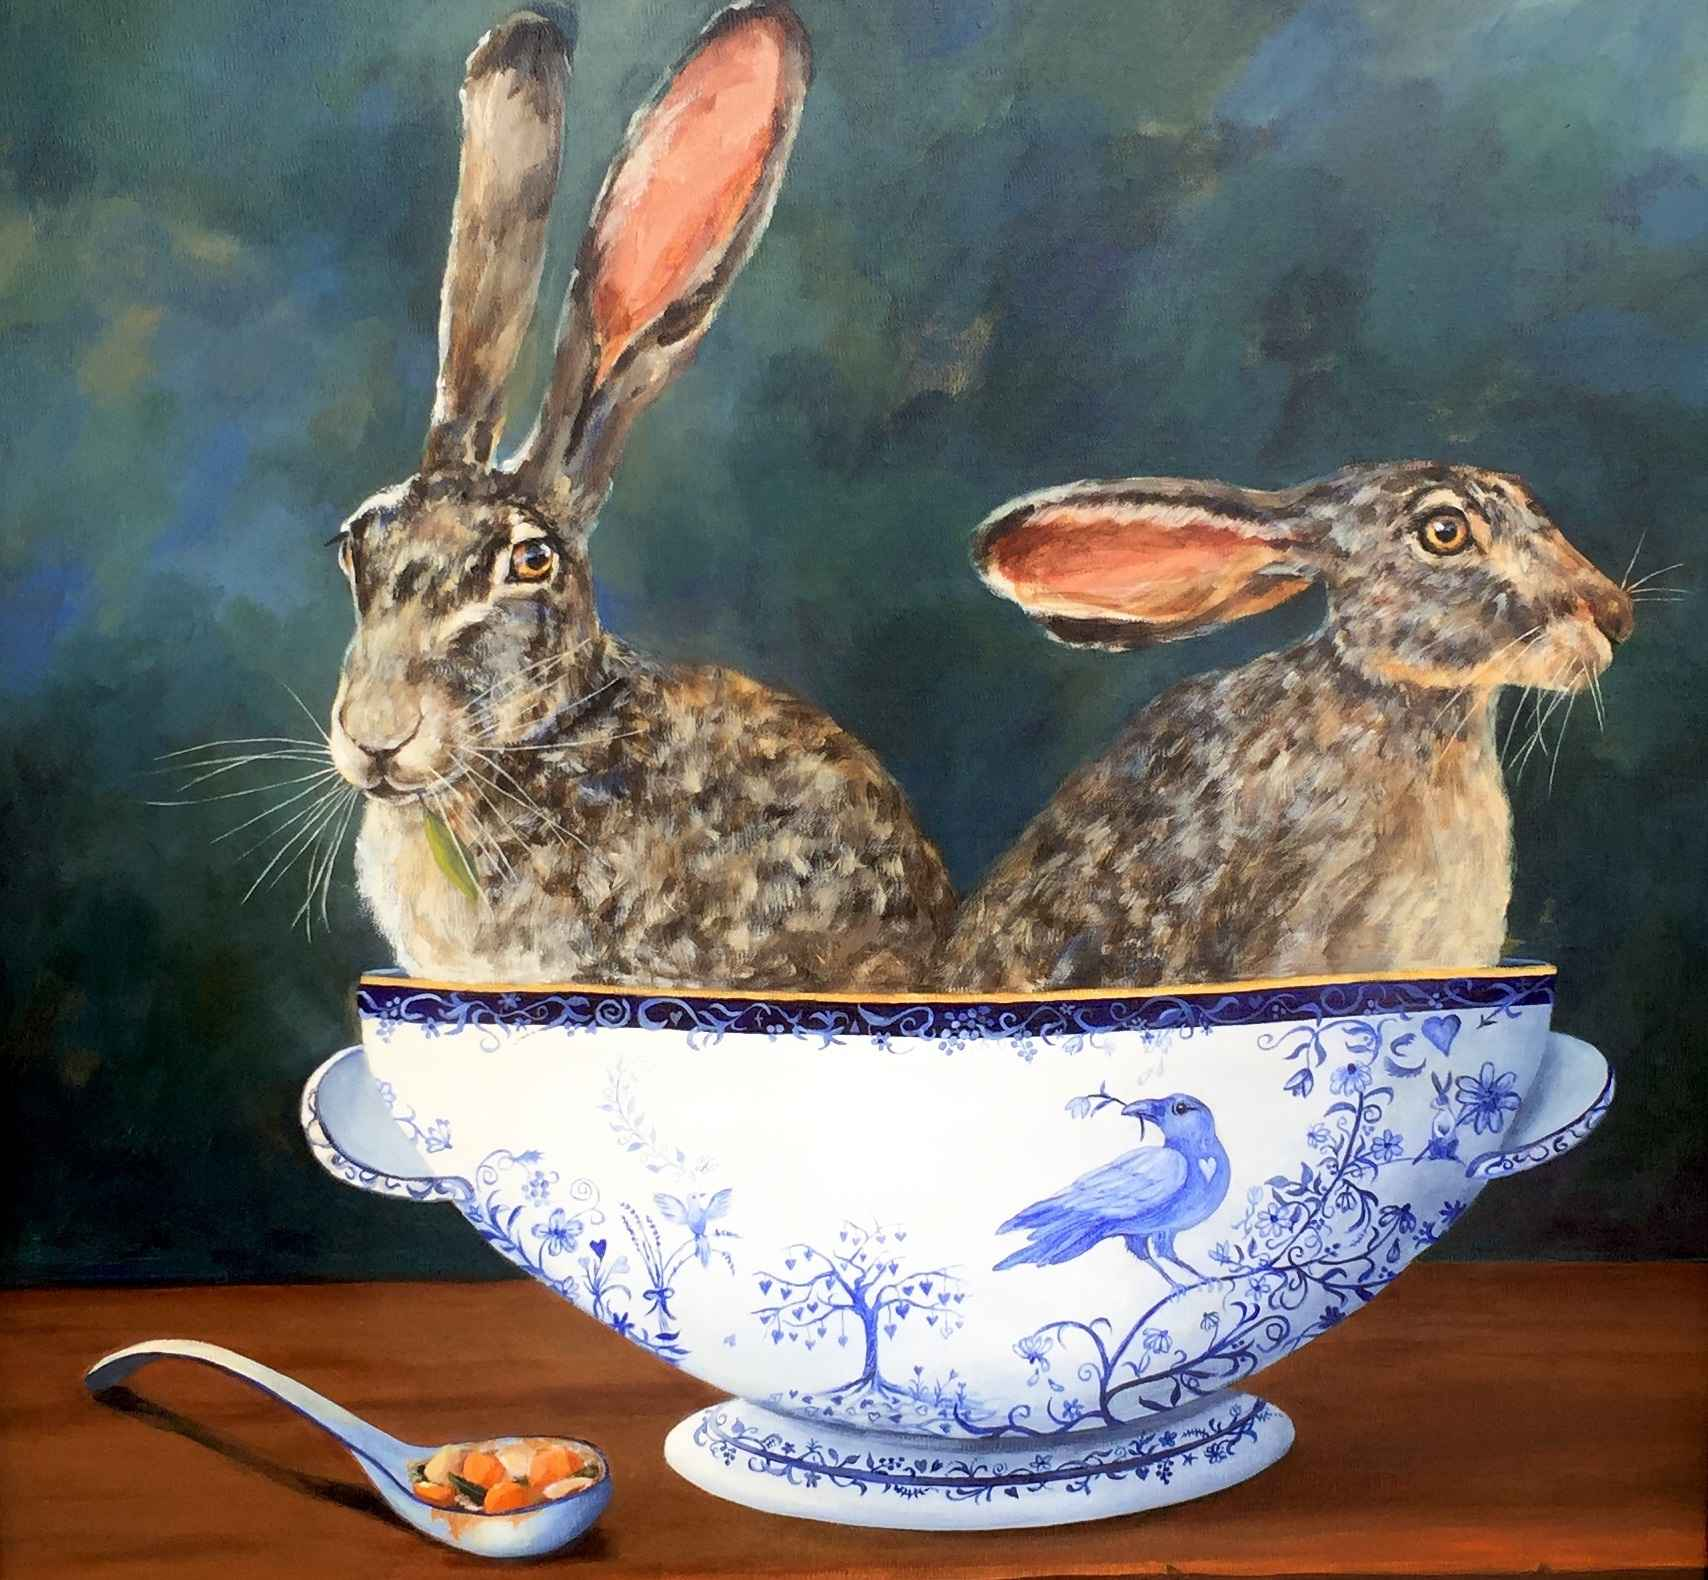 Two Jacks in a Bowl by Ms Sandra Stevens - Masterpiece Online